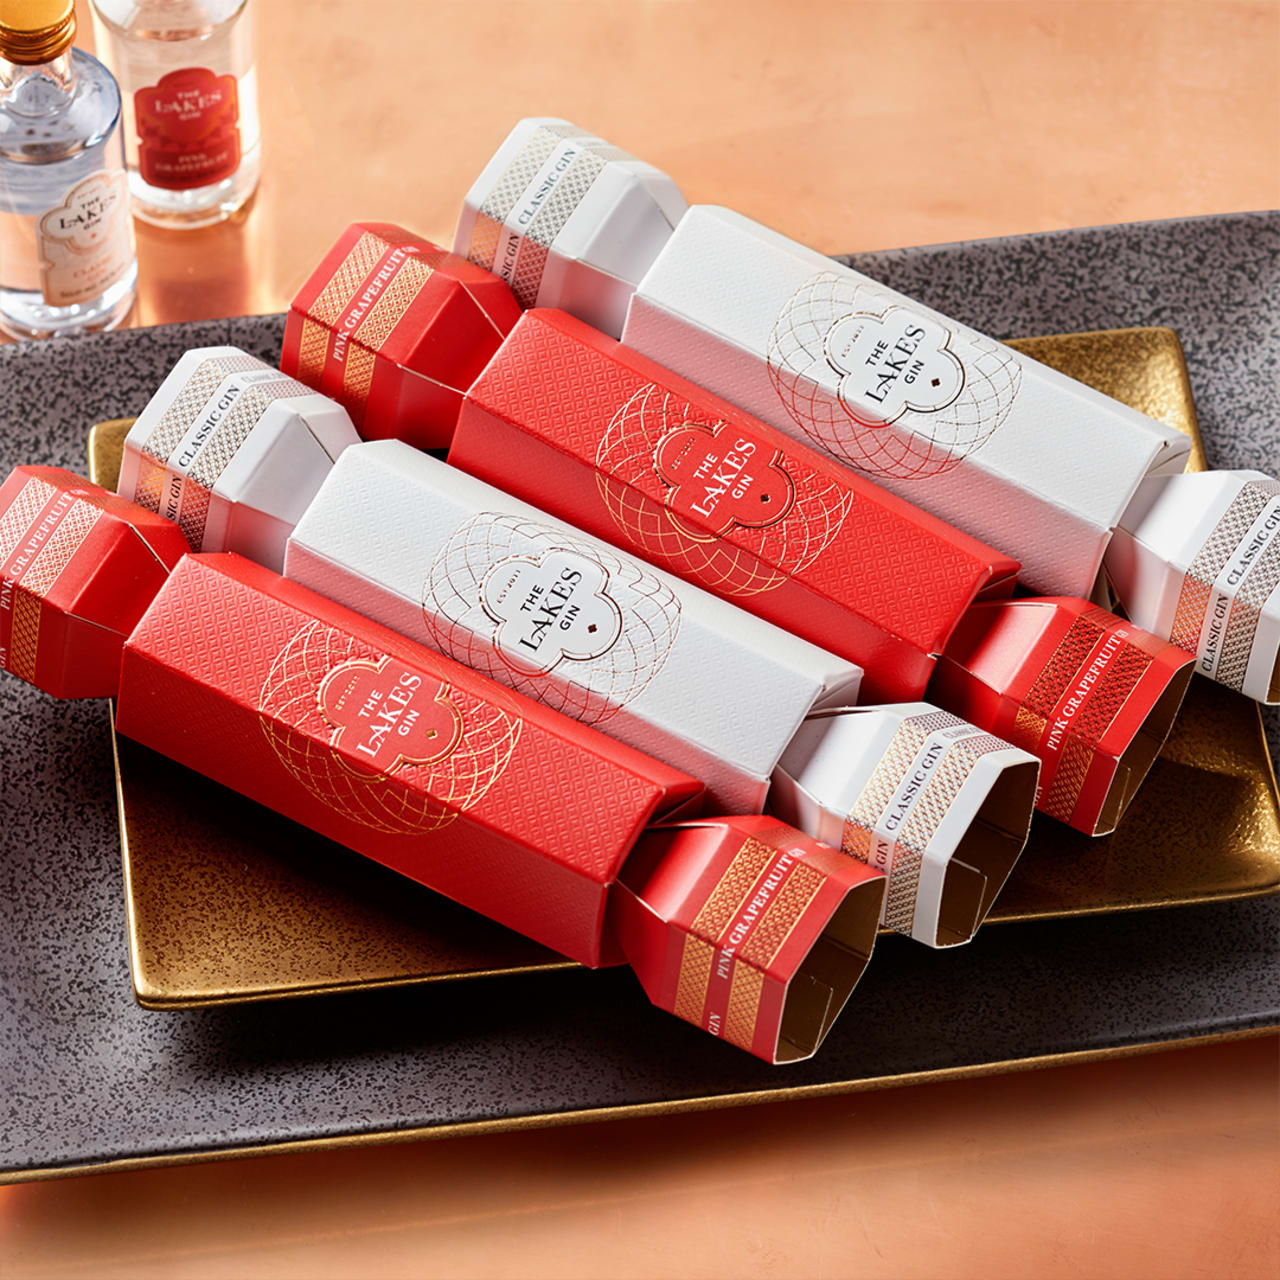 Product Image - The Lakes 4 Pack Gin Cracker Collection